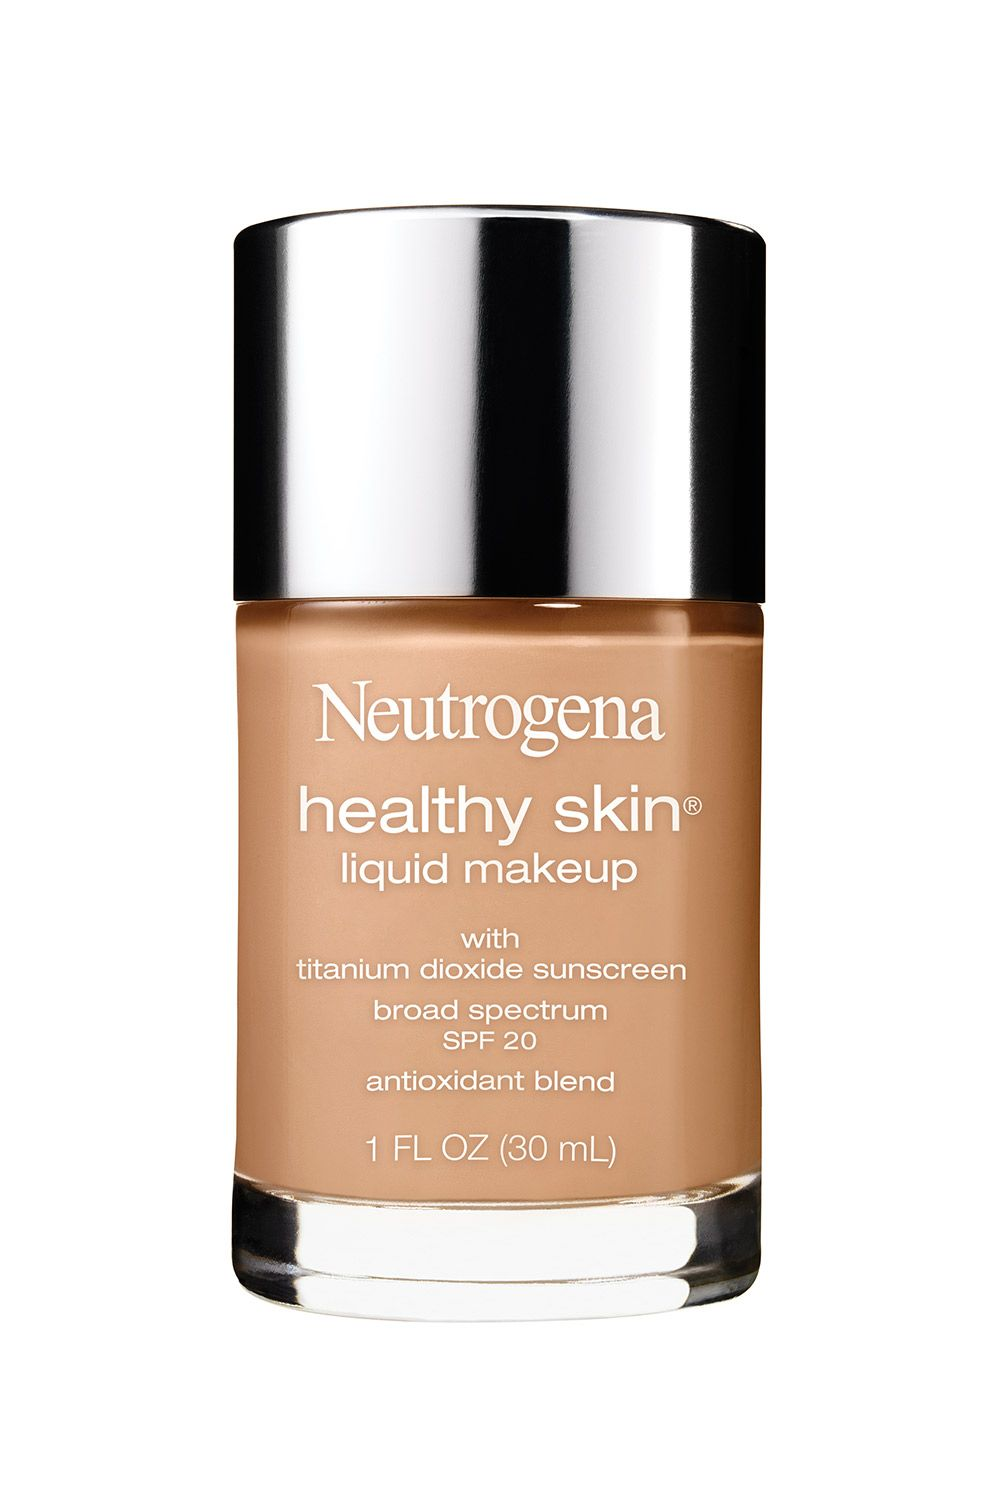 "<p>The 15 shades of <strong>Neutrogena Healthy Skin Liquid Makeup Broad Spectrum SPF 20 </strong>boost sun protection while evening out your skin and leaving it luminous. Perfect for a midday soiree (and you'll still have a flawless complexion come sunset). <em>$14, <a href=""http://www.neutrogena.com/product/healthy+skin+liquid+makeup+broad+spectrum+spf+20.do"" target=""_blank"">neutrogena.com</a></em></p>"